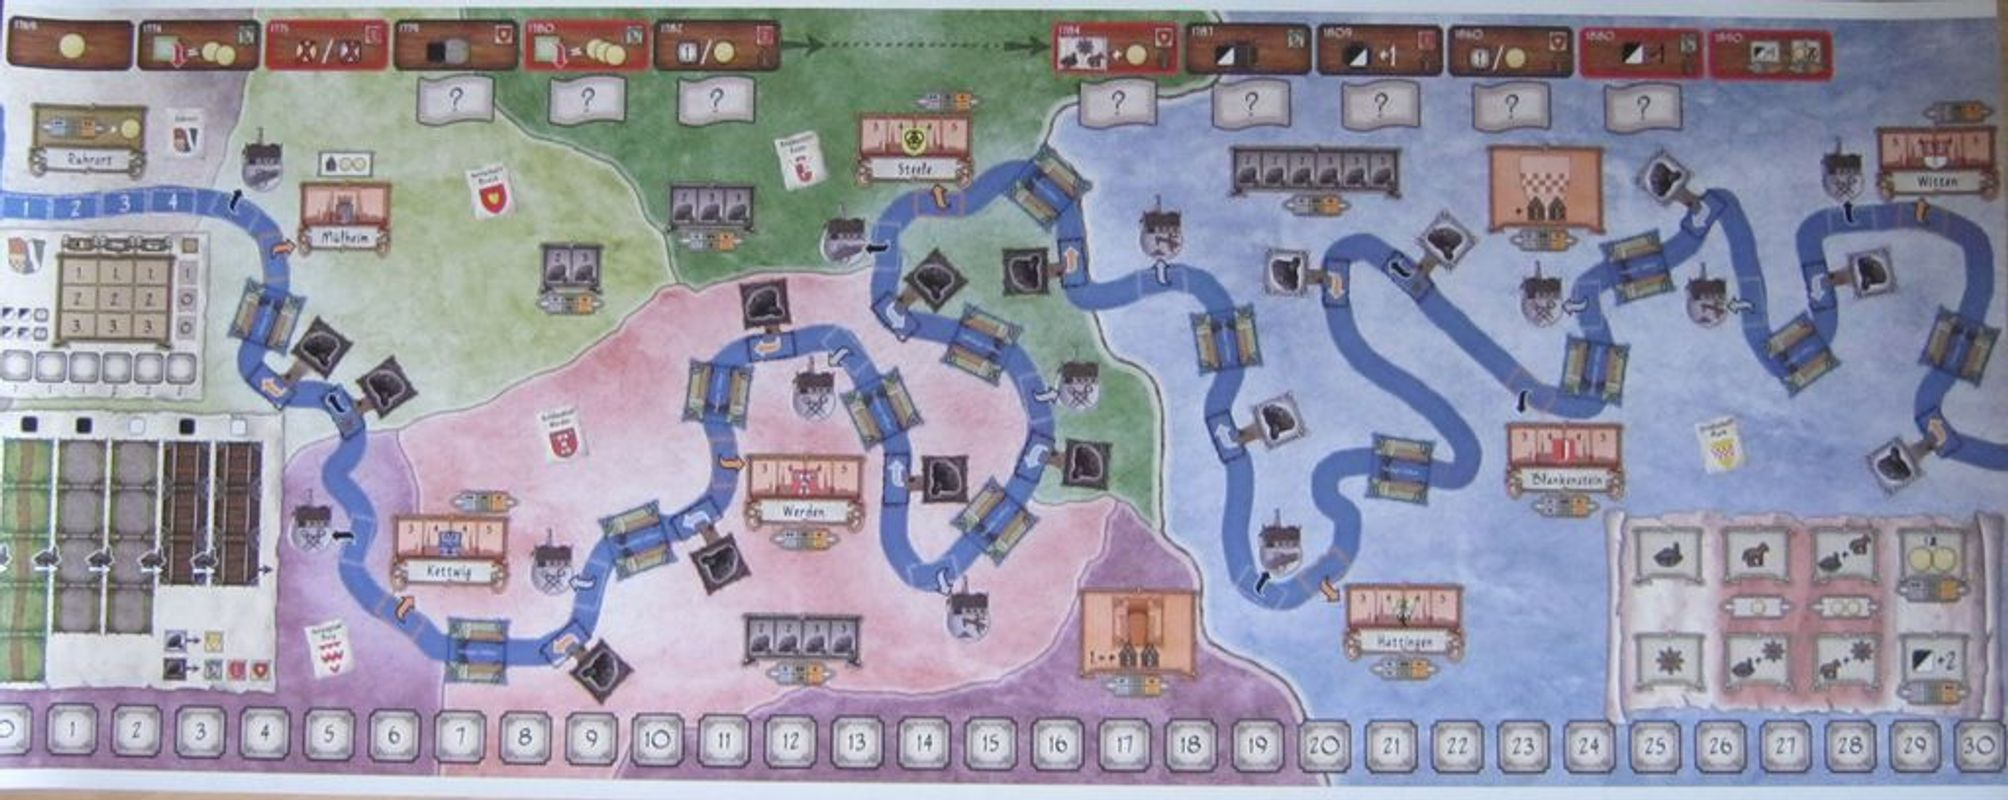 The Ruhr: A Story of Coal Trade game board